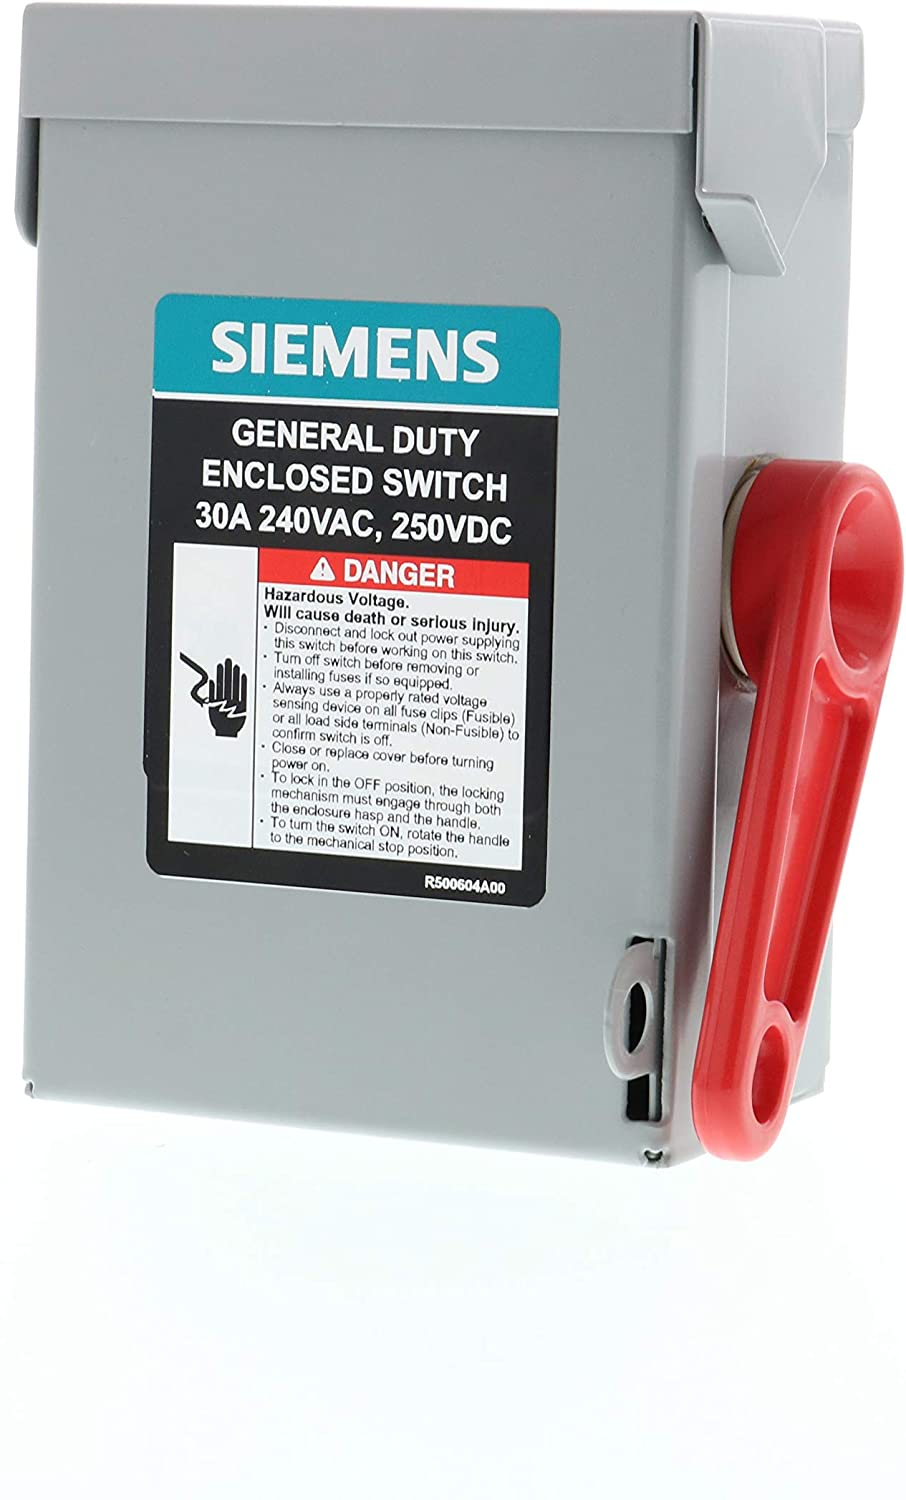 SIEMENS GNF321A 3P 30A 240V General Duty Safety Switch Indoor, Non-Fusible, ANSI 61 Grey